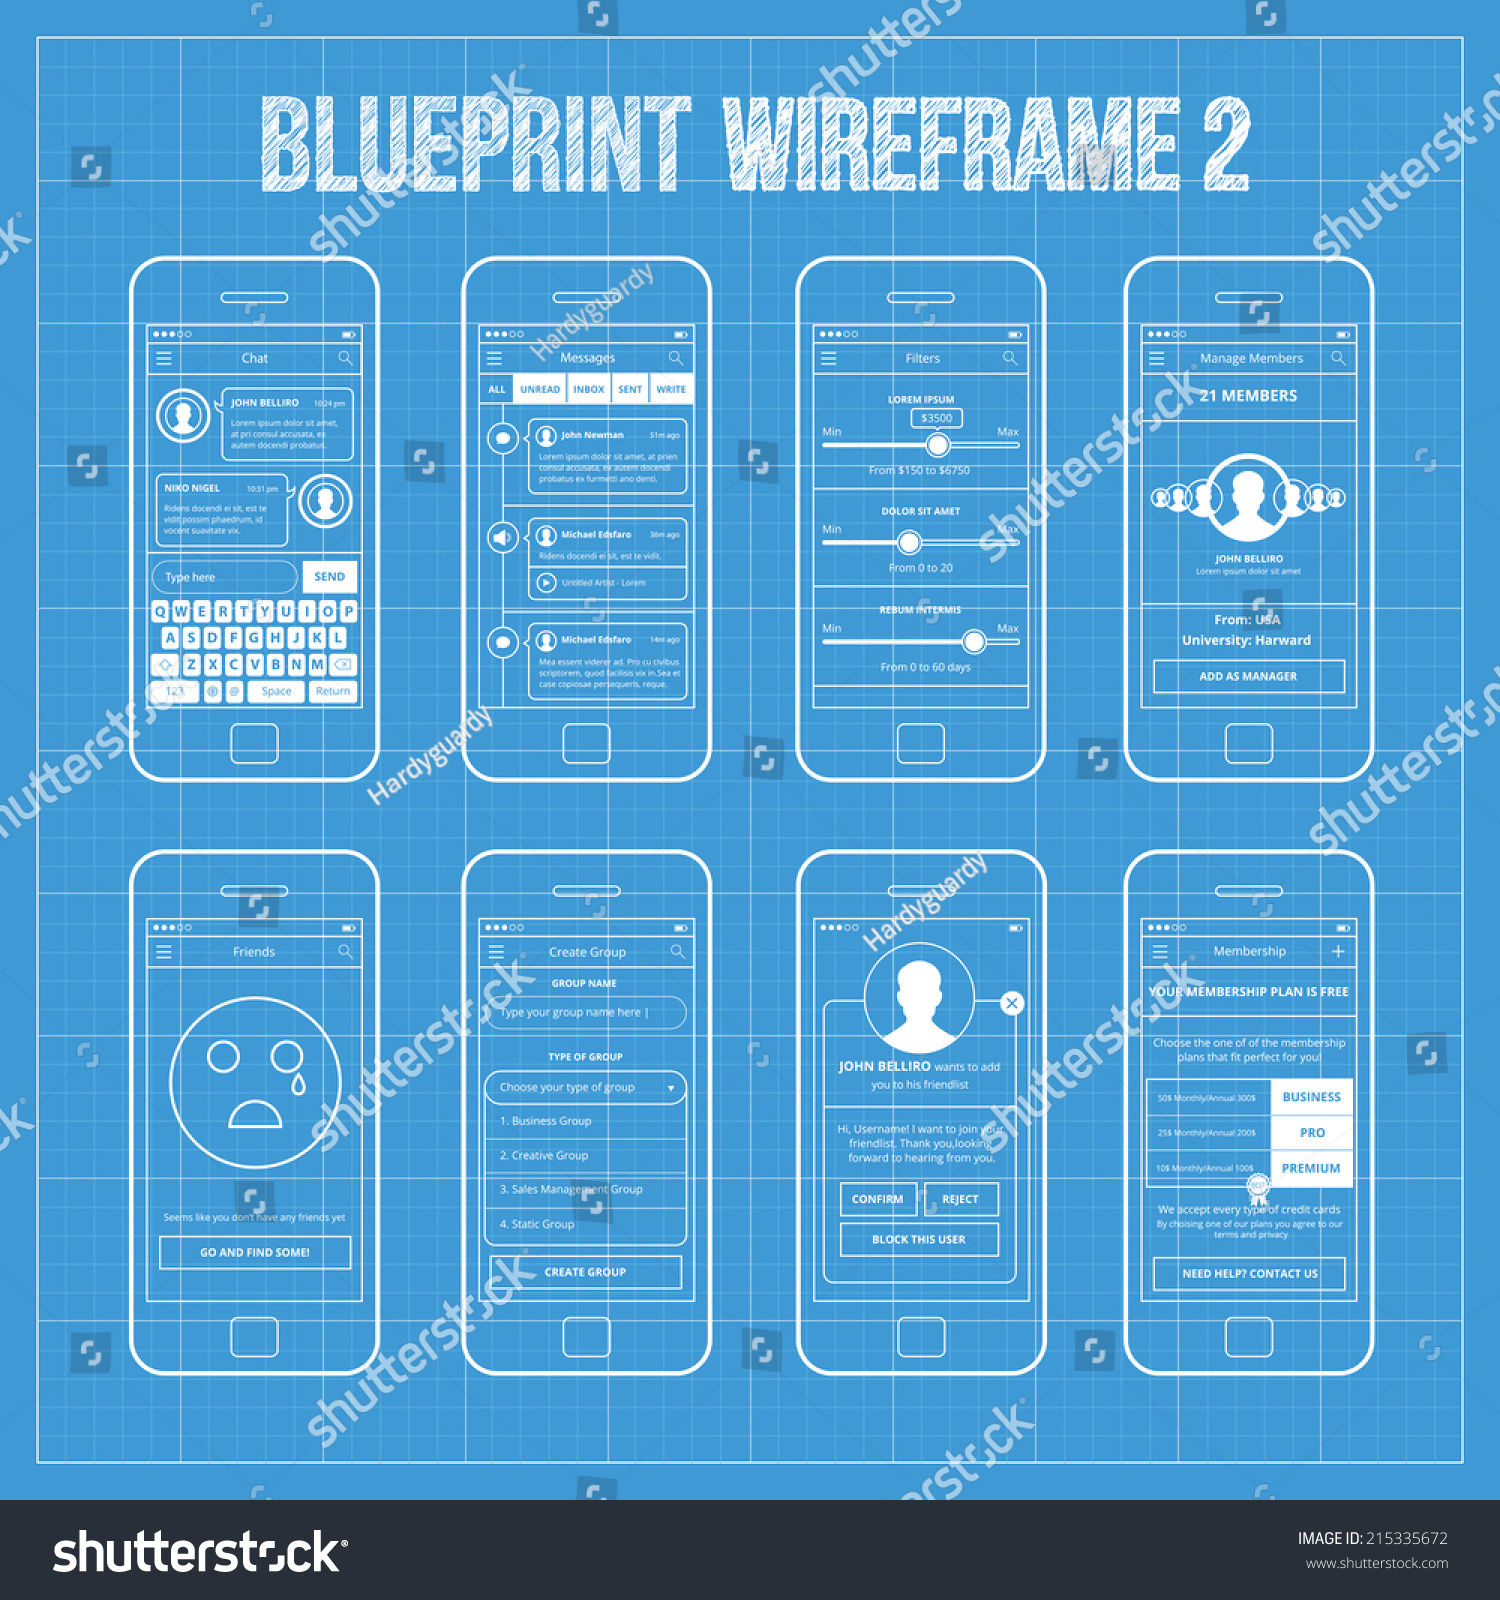 Royalty free blueprint wireframe mobile app ui kit 215335672 blueprint wireframe mobile app ui kit 2 chat screen messages screen filters screen malvernweather Images